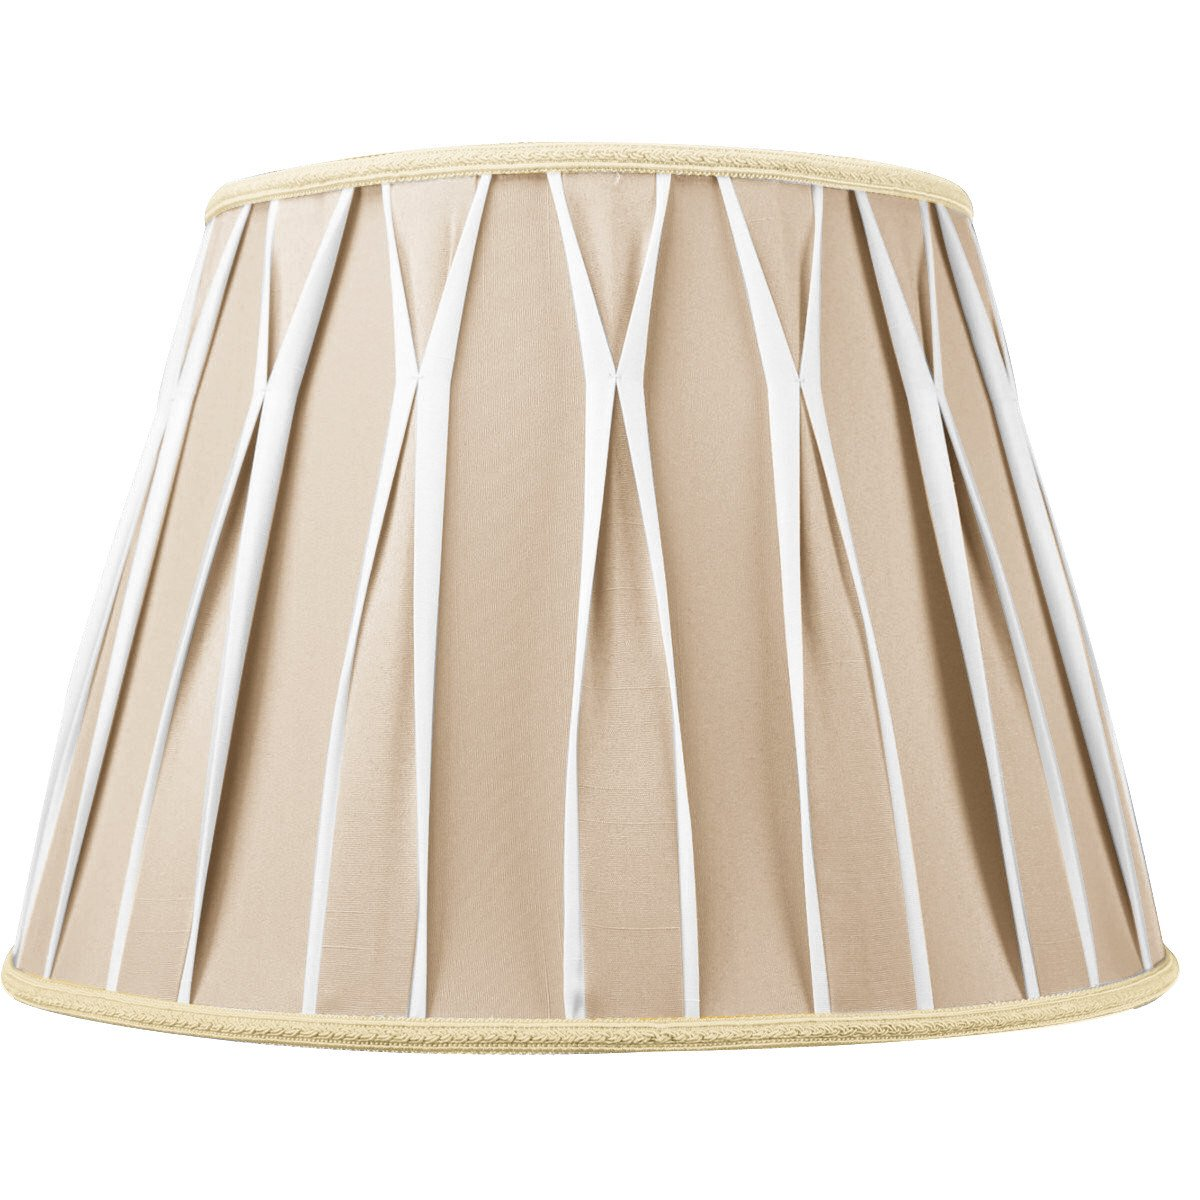 10x16x11 Beige/White Pinched Pleat Shantung Lampshade